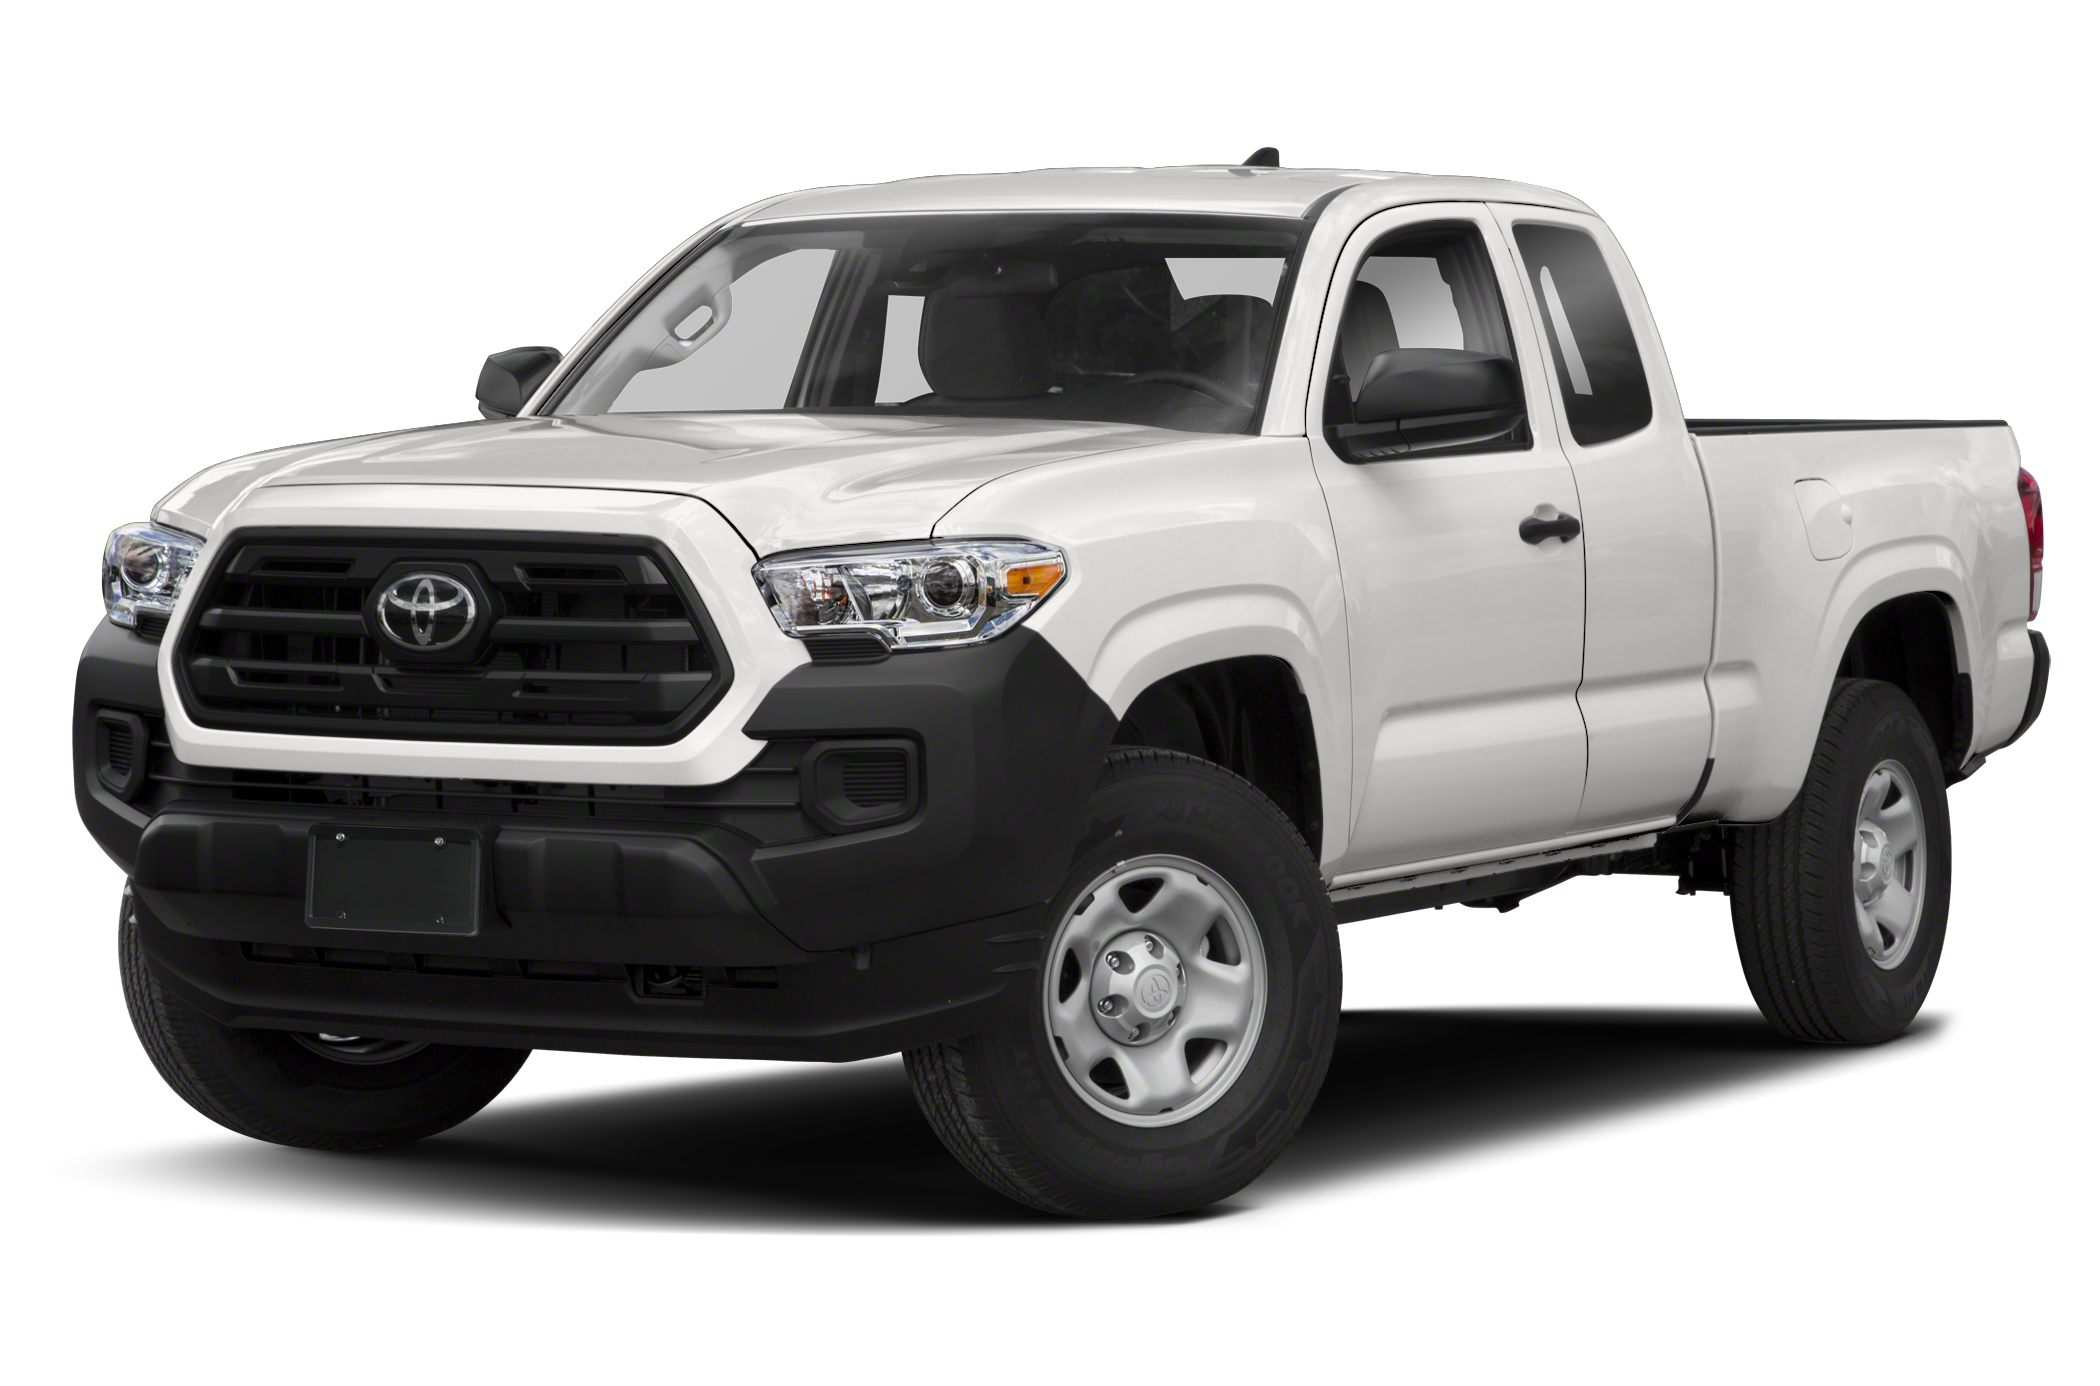 57 All New 2019 Toyota Tacoma Research New